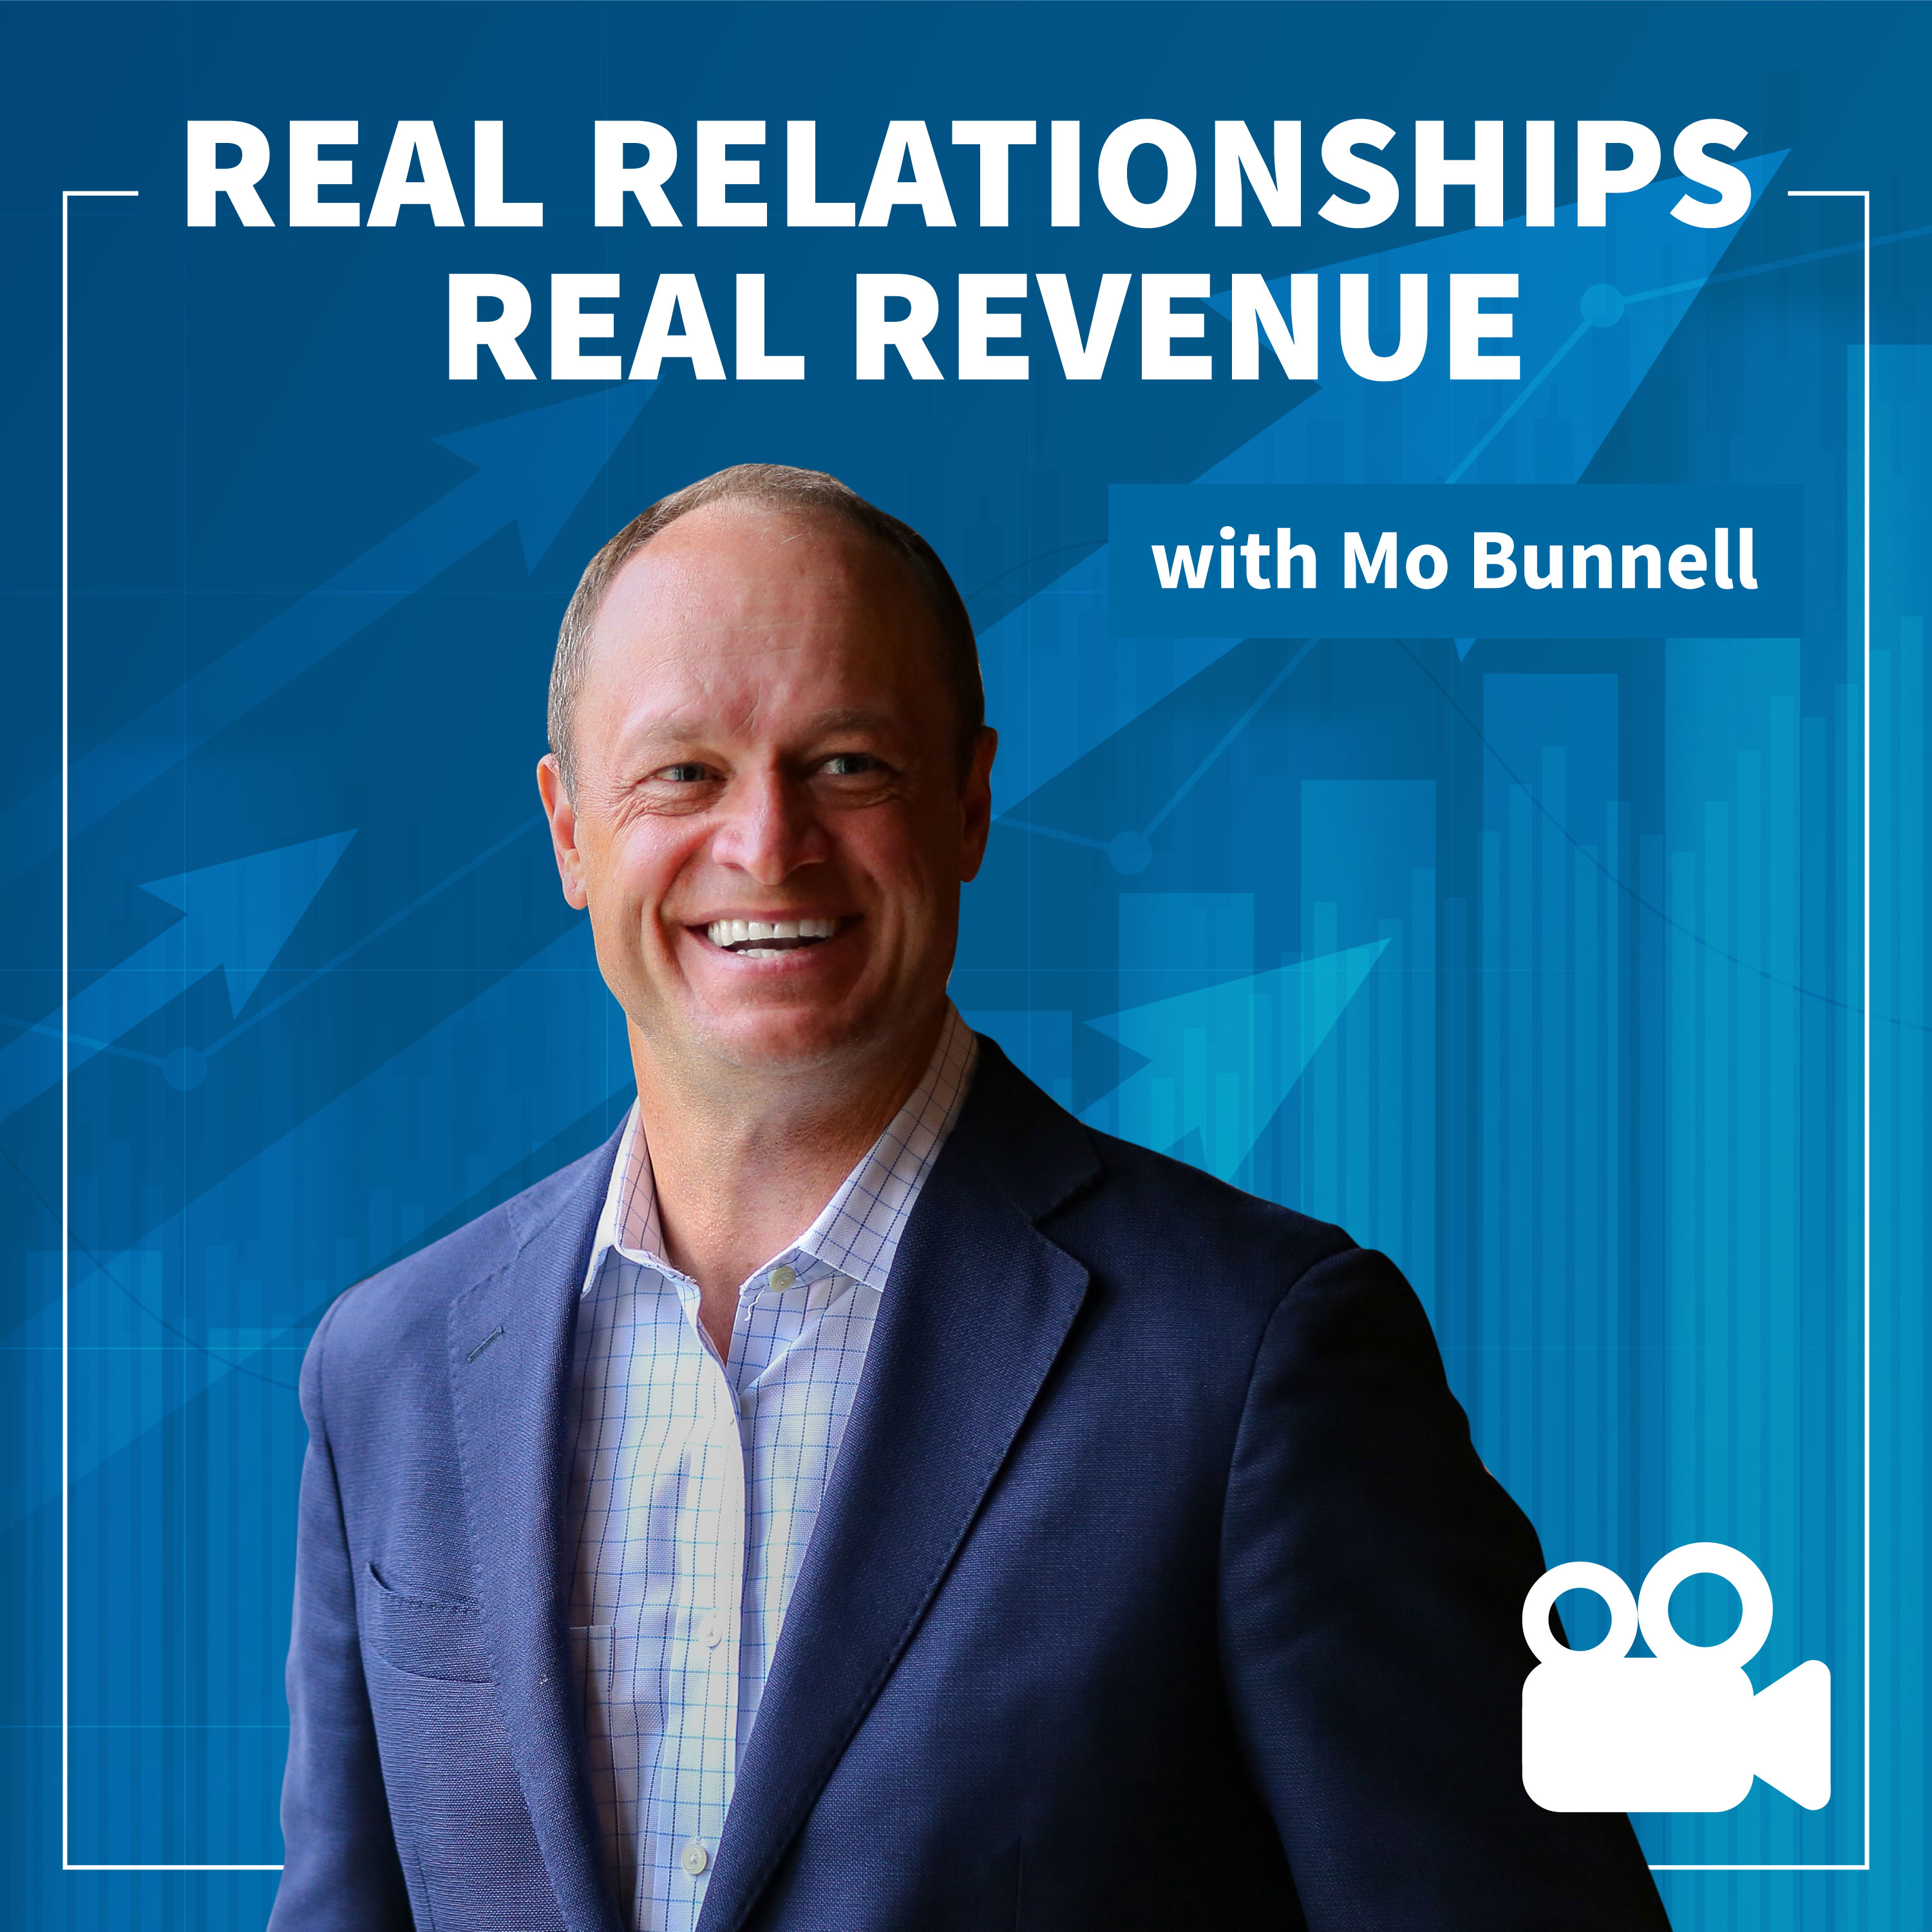 Mike Deimler Talks About the Most Important Lessons He Learned Becoming One of the Top Trusted Advisors in the World